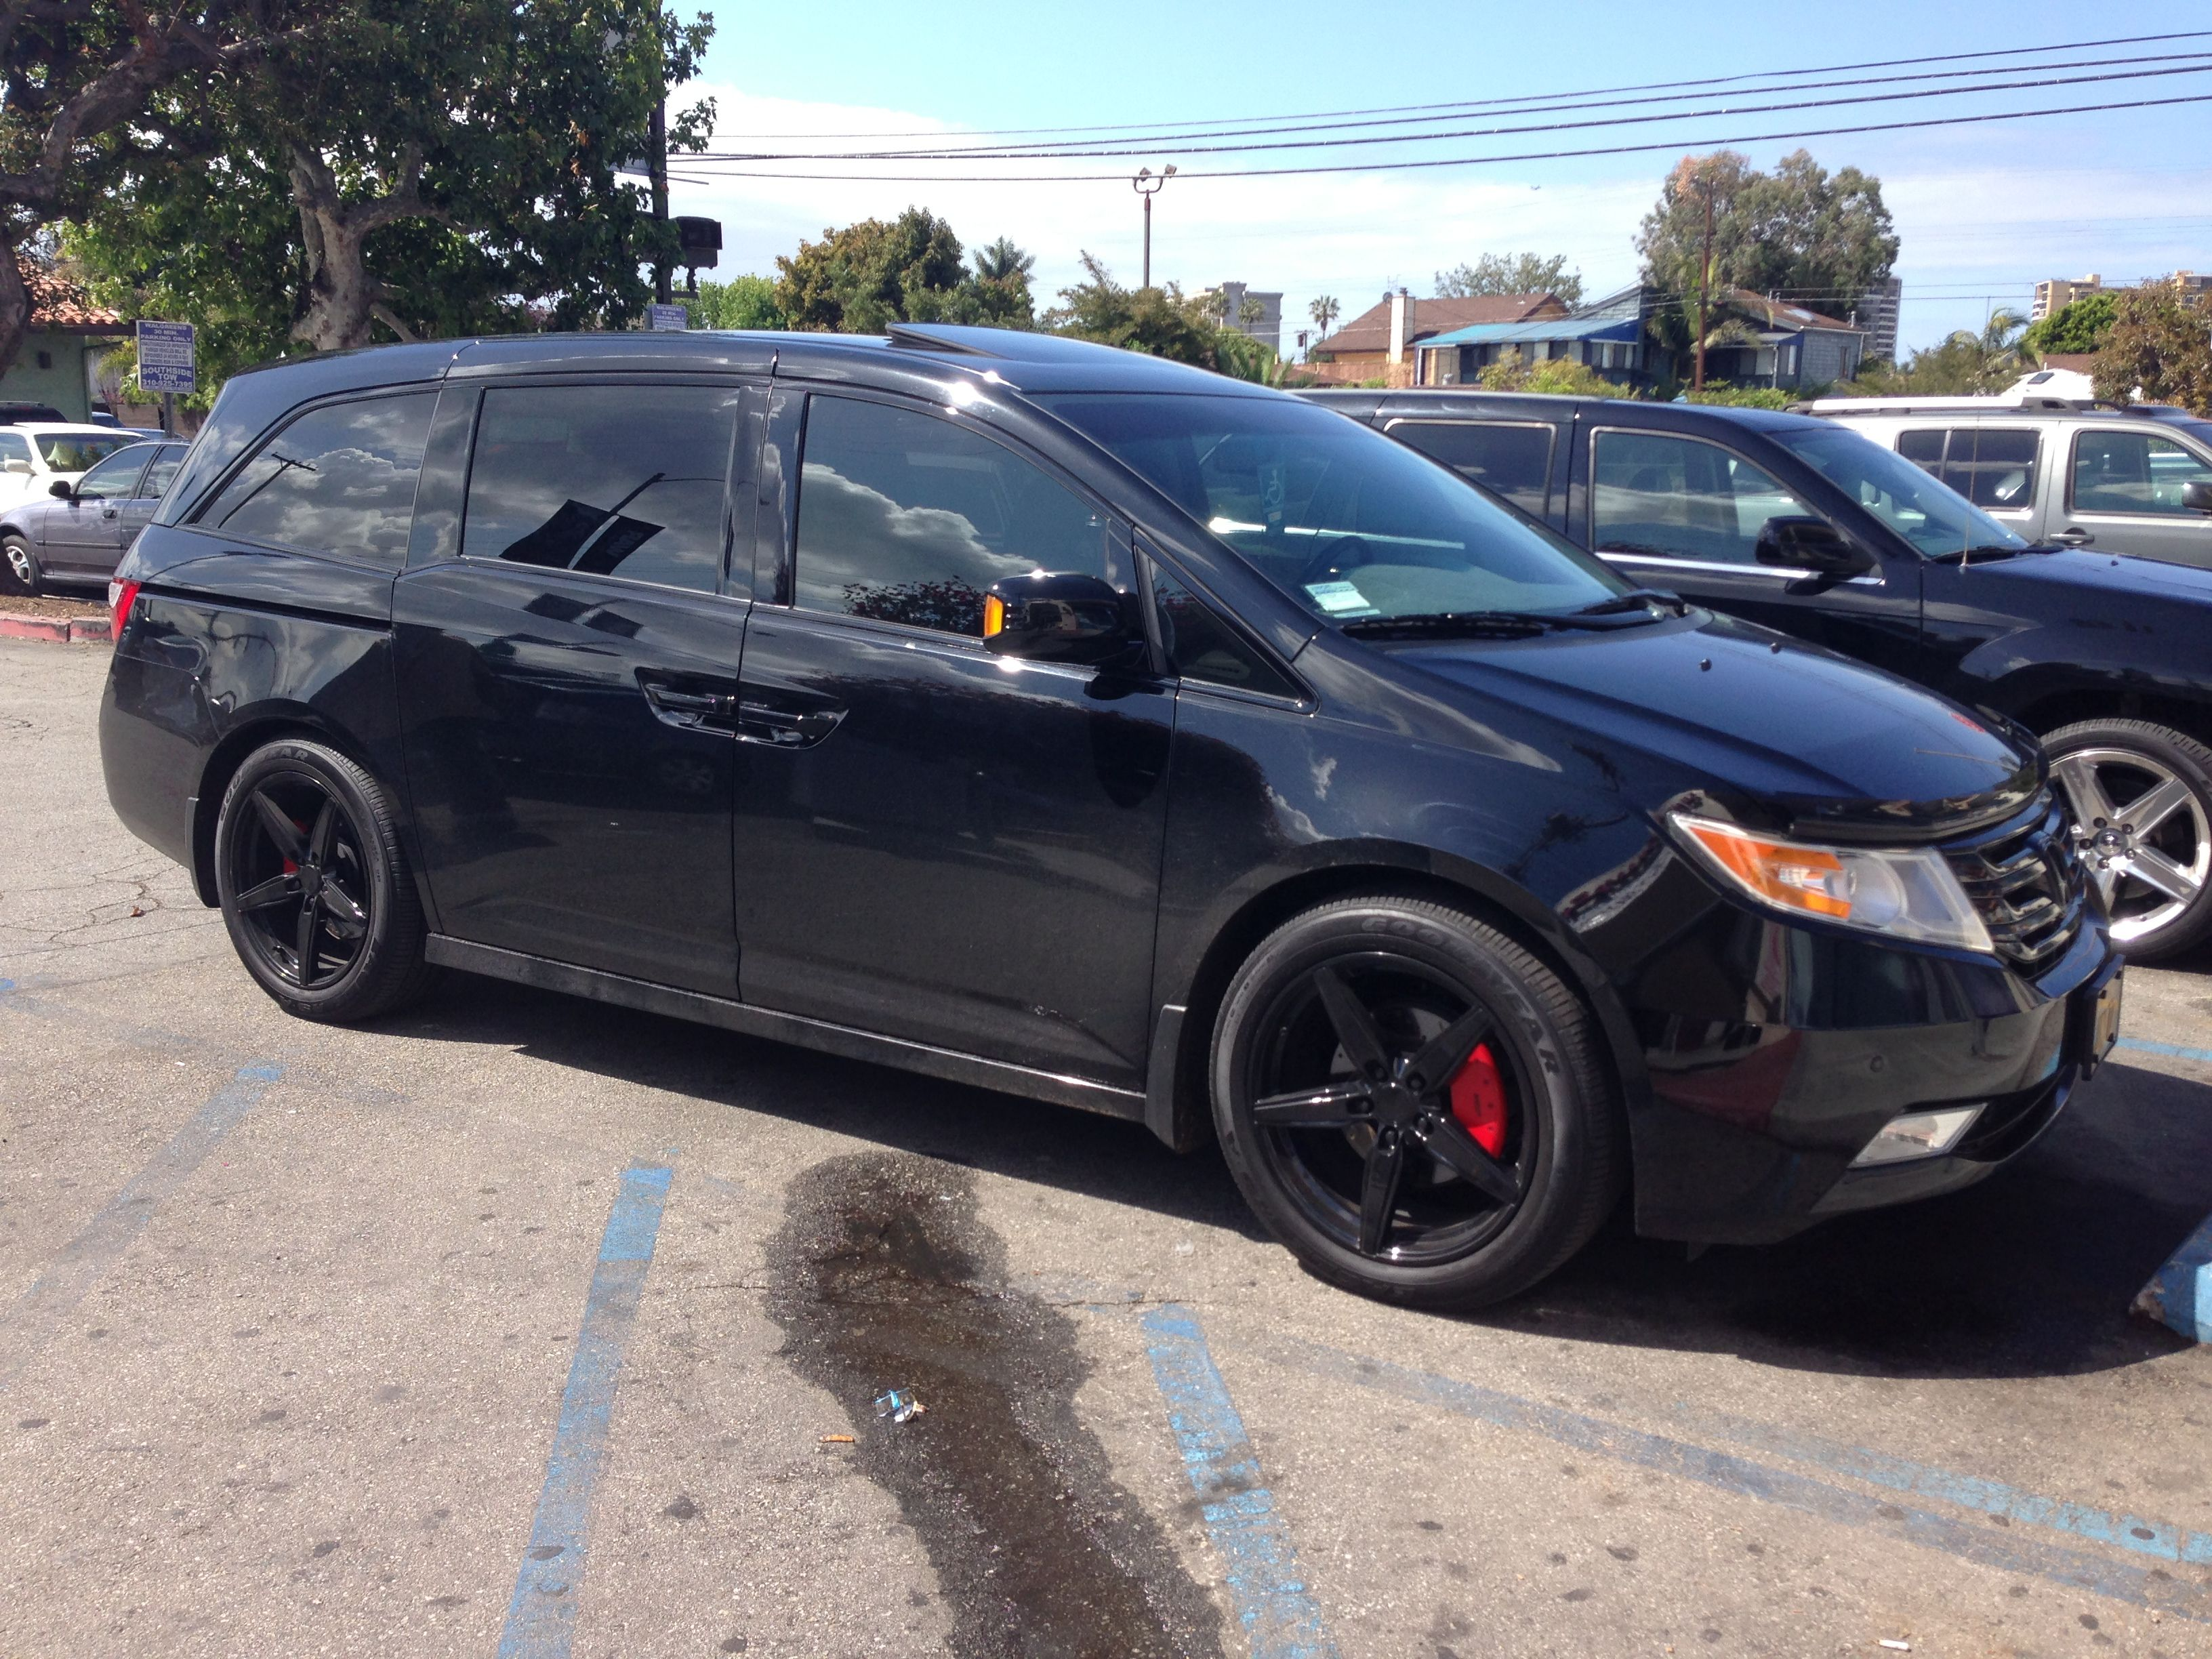 Murdered out honda odyssey